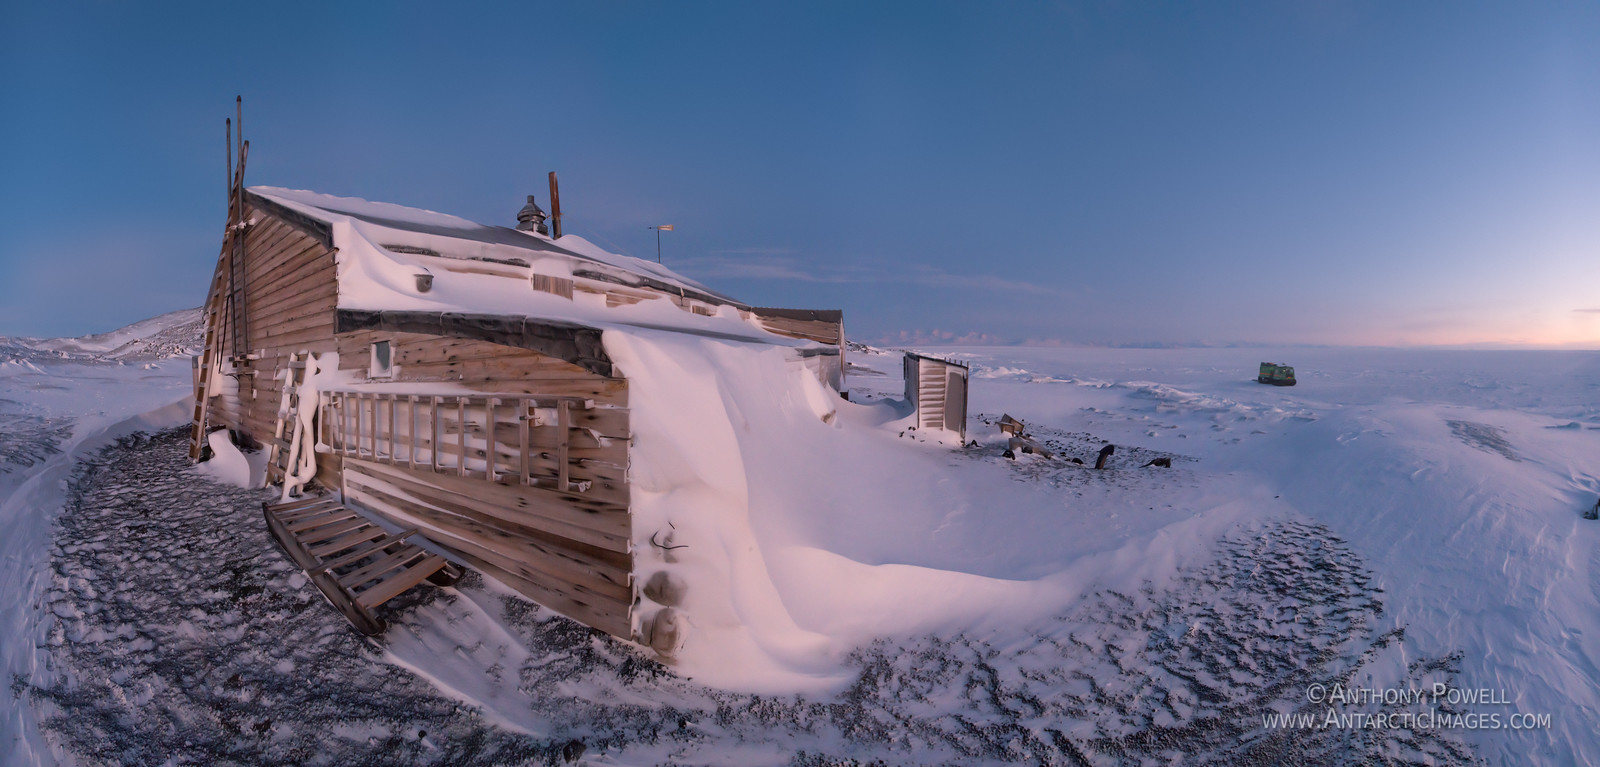 Cape Evans Hut in late winter as the light begins to return to the sky.